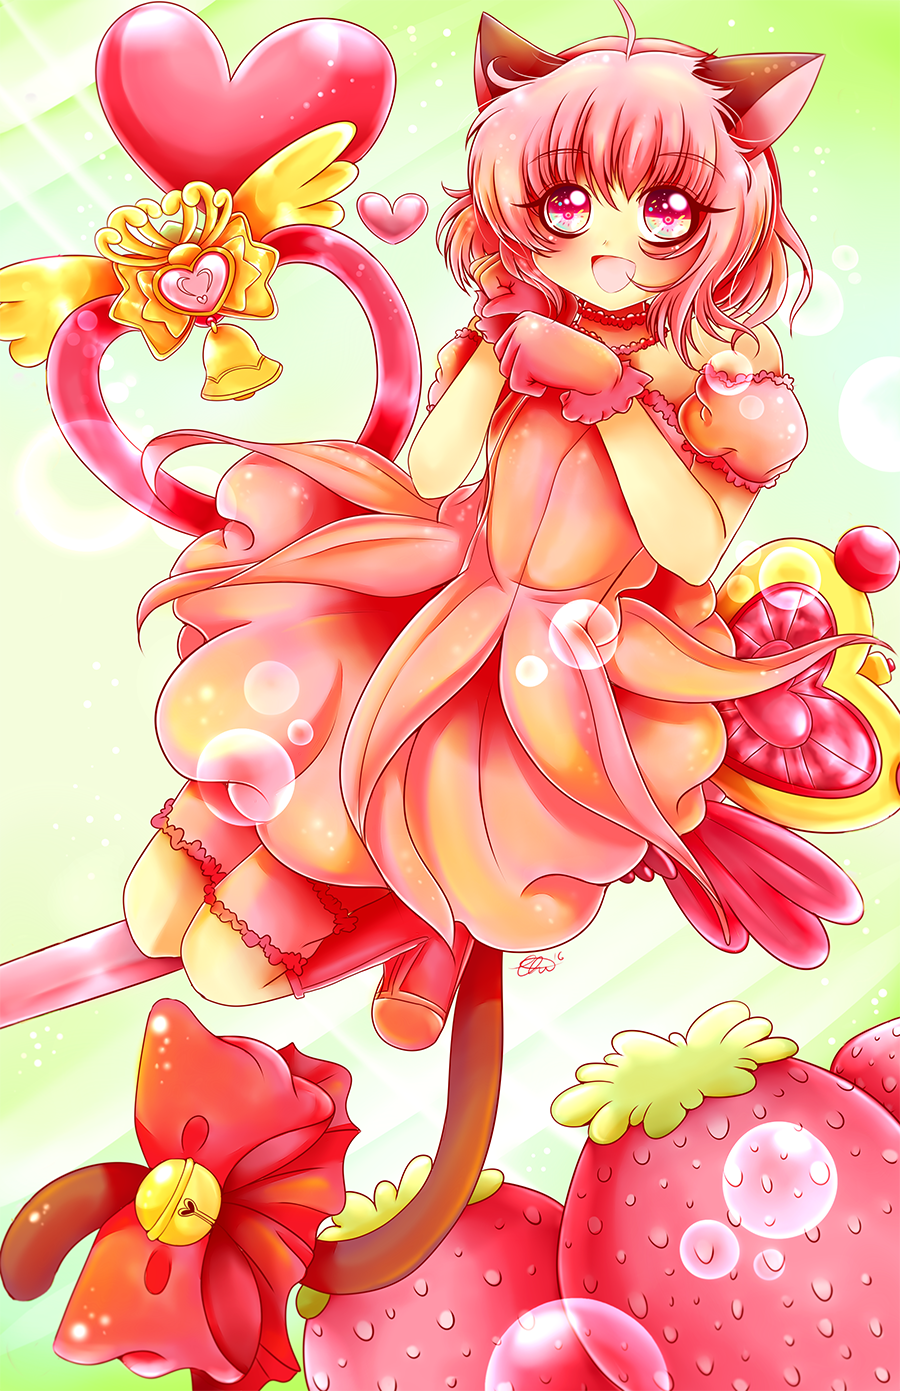 strawberry_heart_by_seirasenchii-da5omef.png